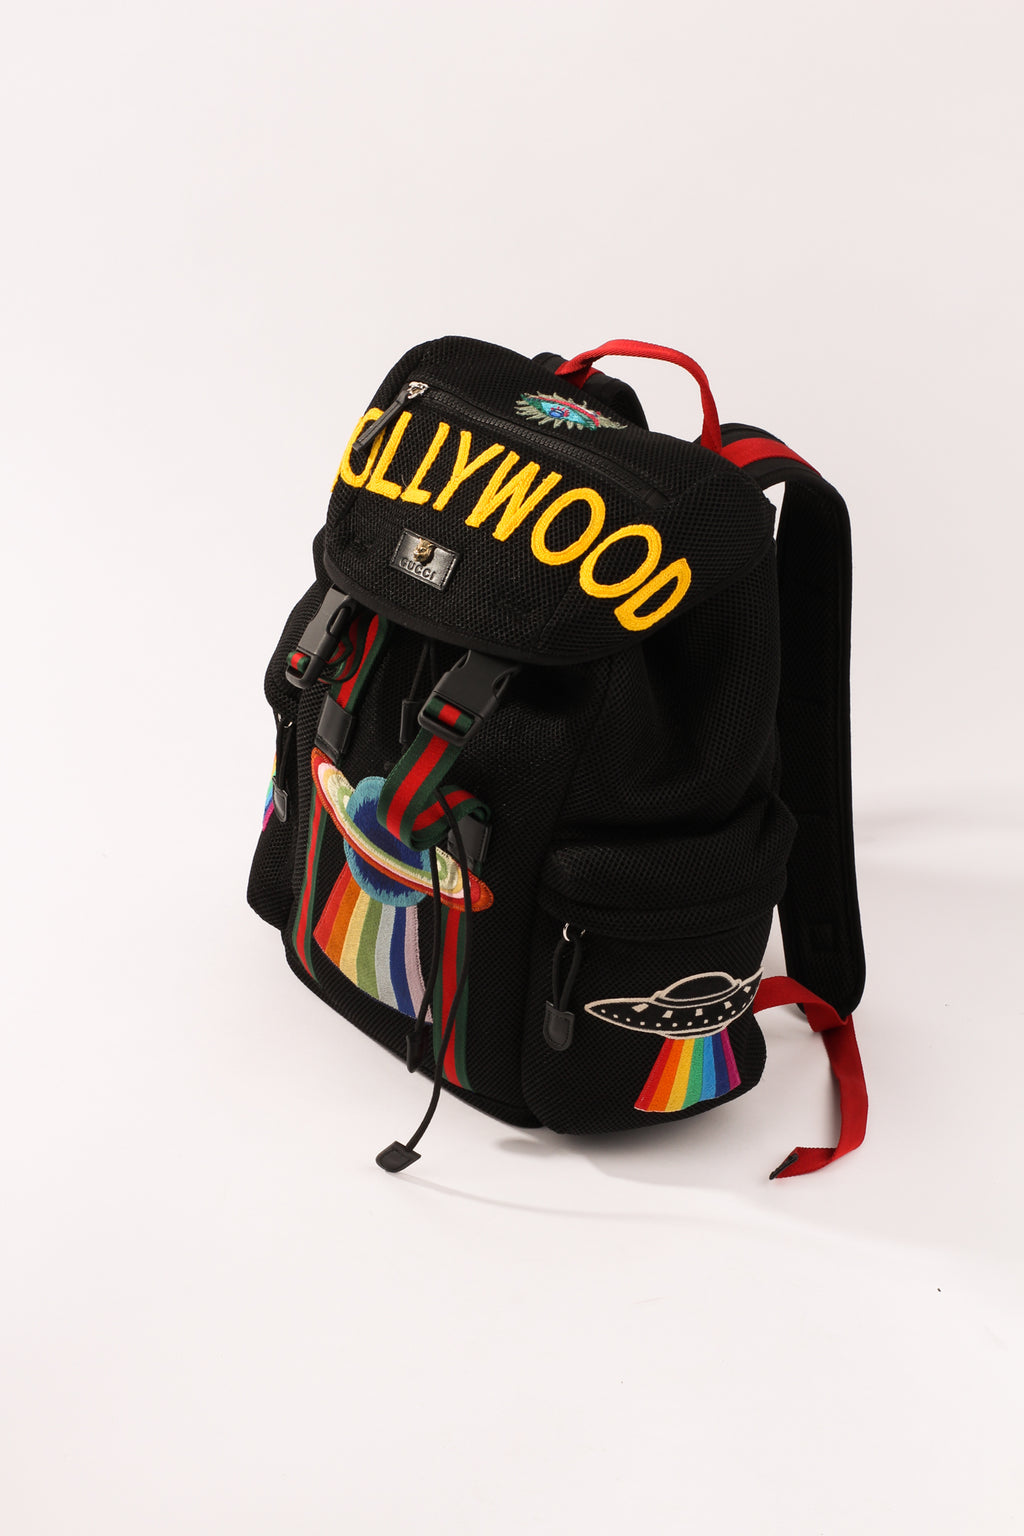 Gucci Black Mesh backpack with embroidery